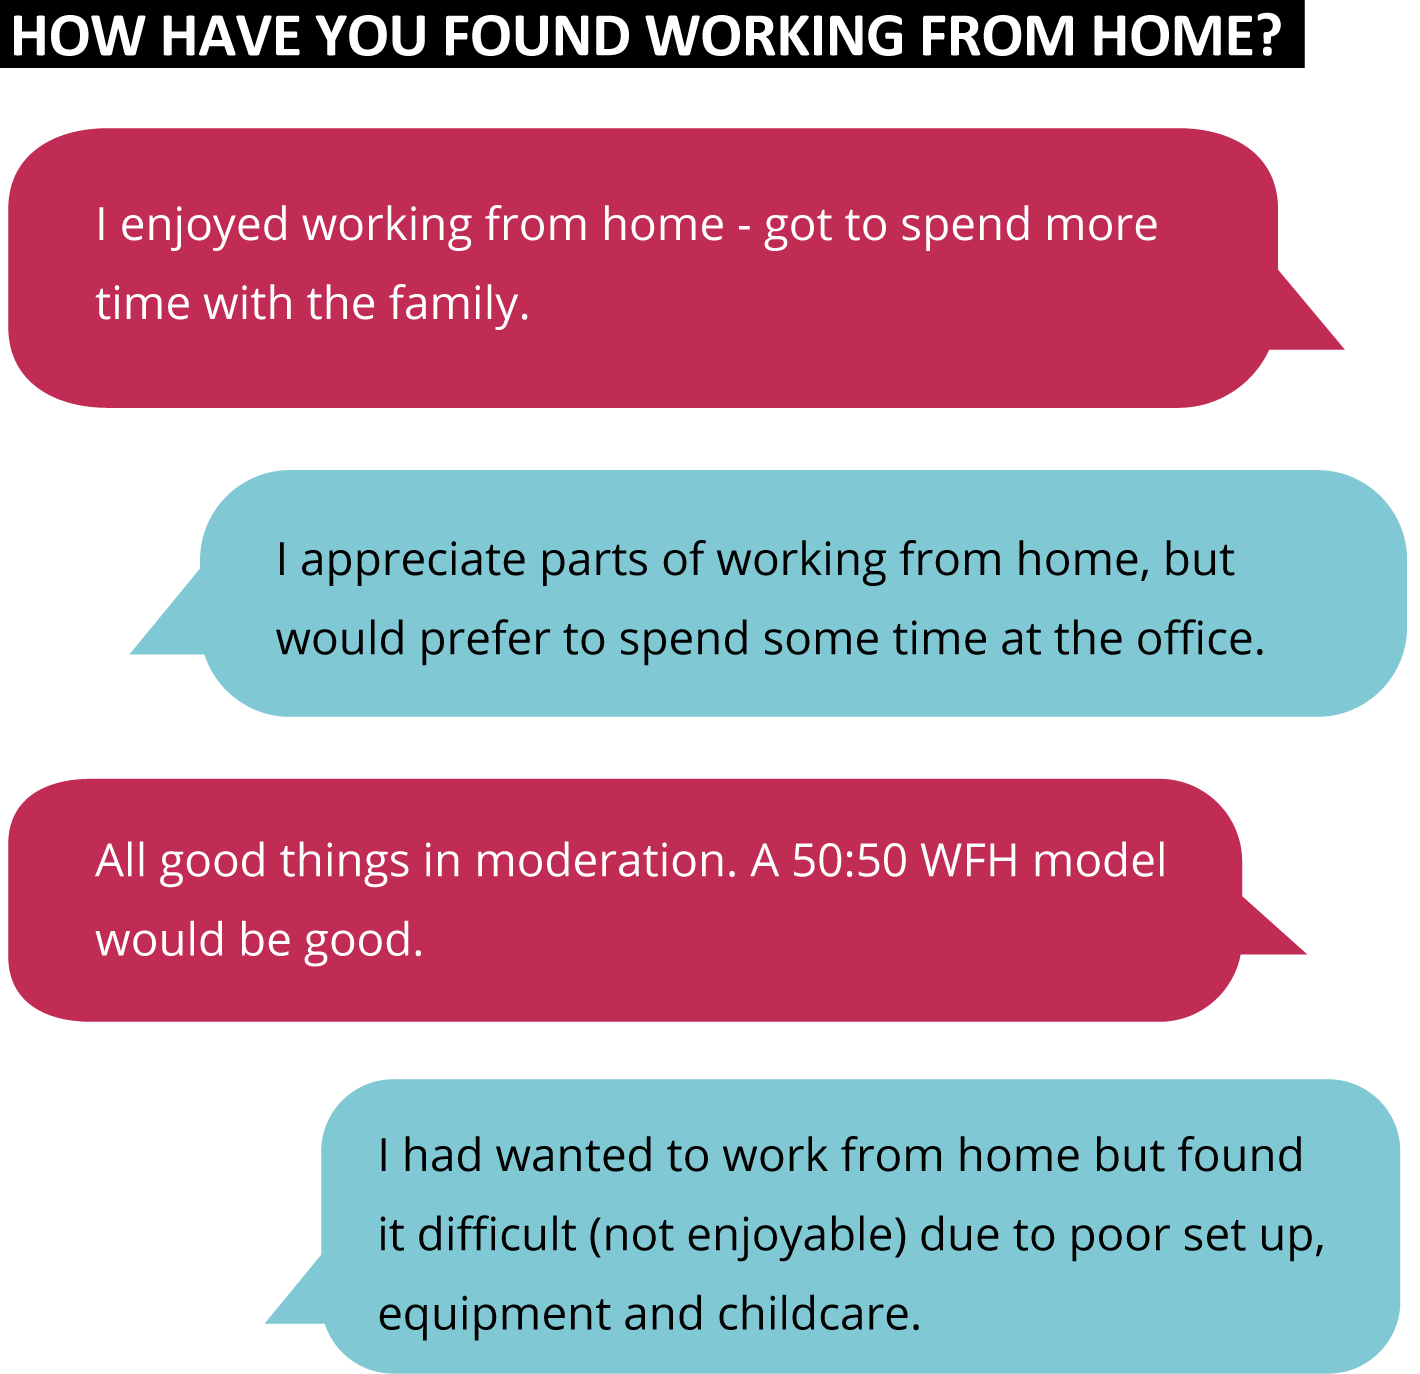 How have you found working from home?